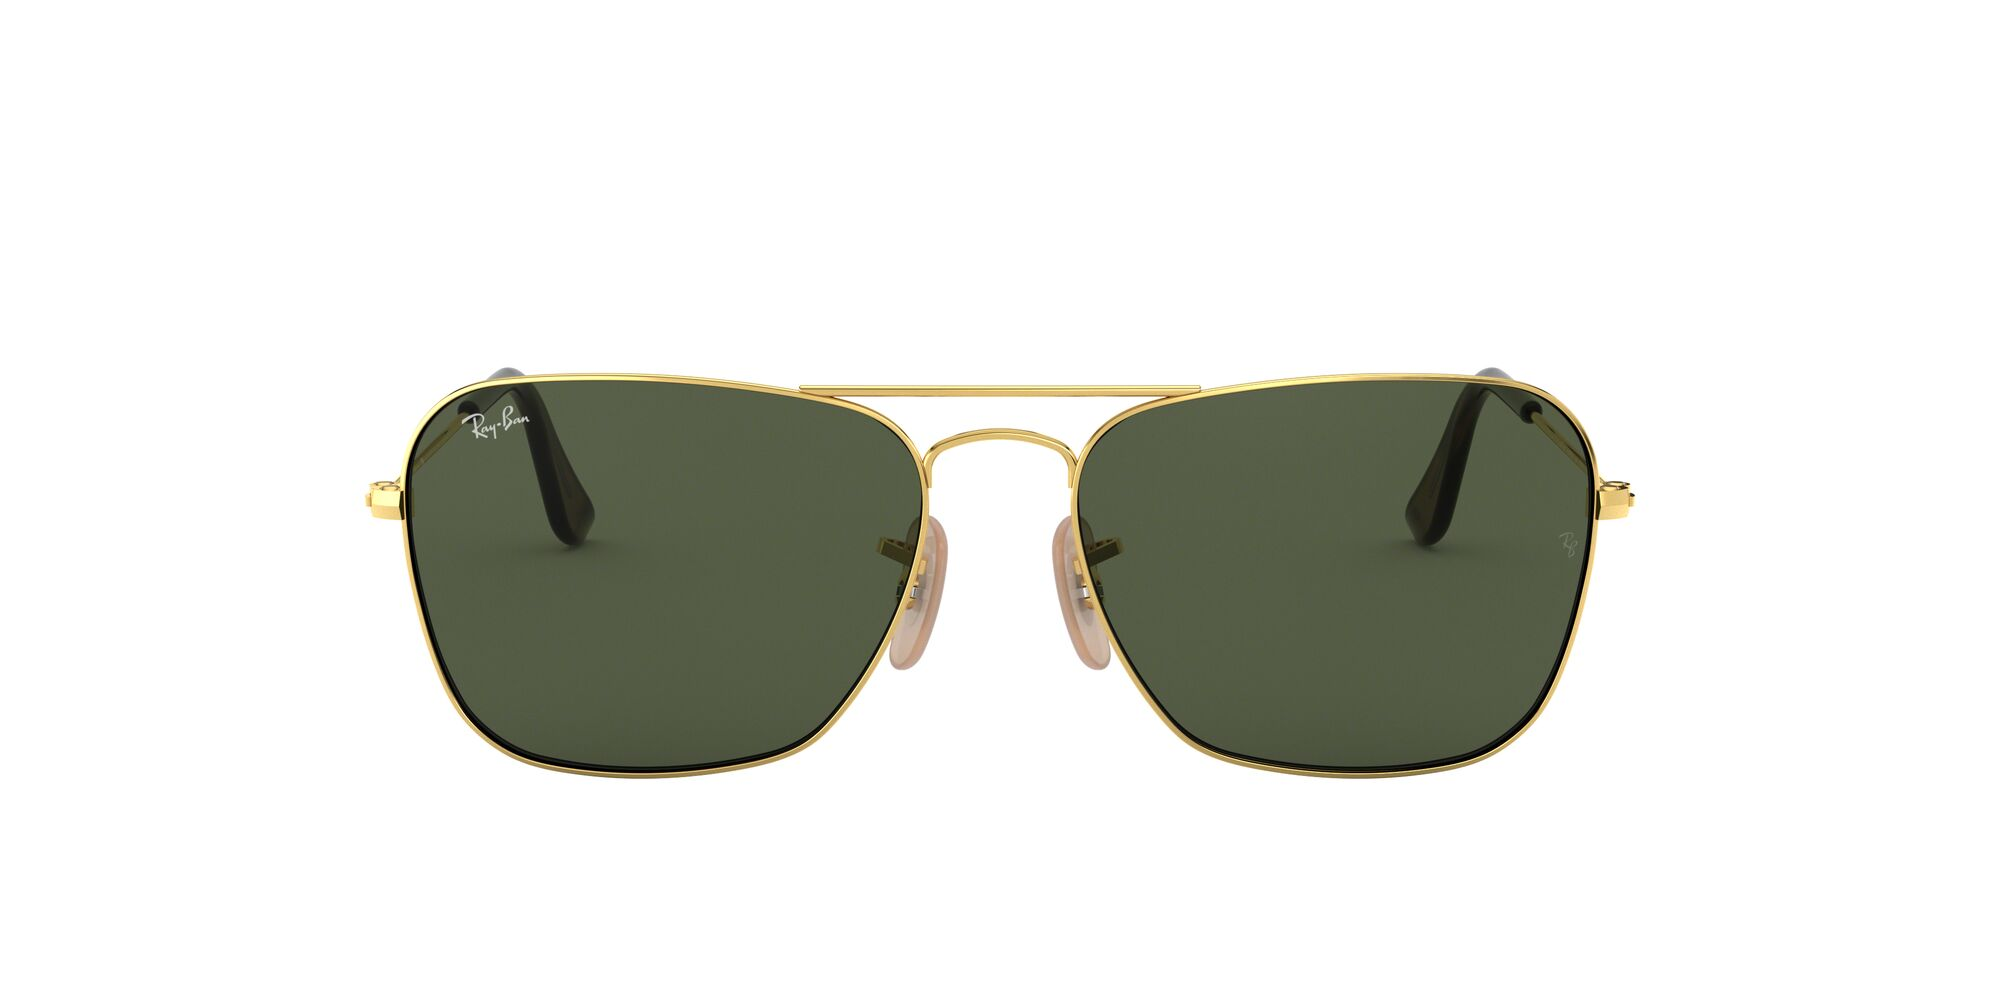 Front Ray-Ban Ray-Ban 0RB3136 181 55/15 Goud/Groen